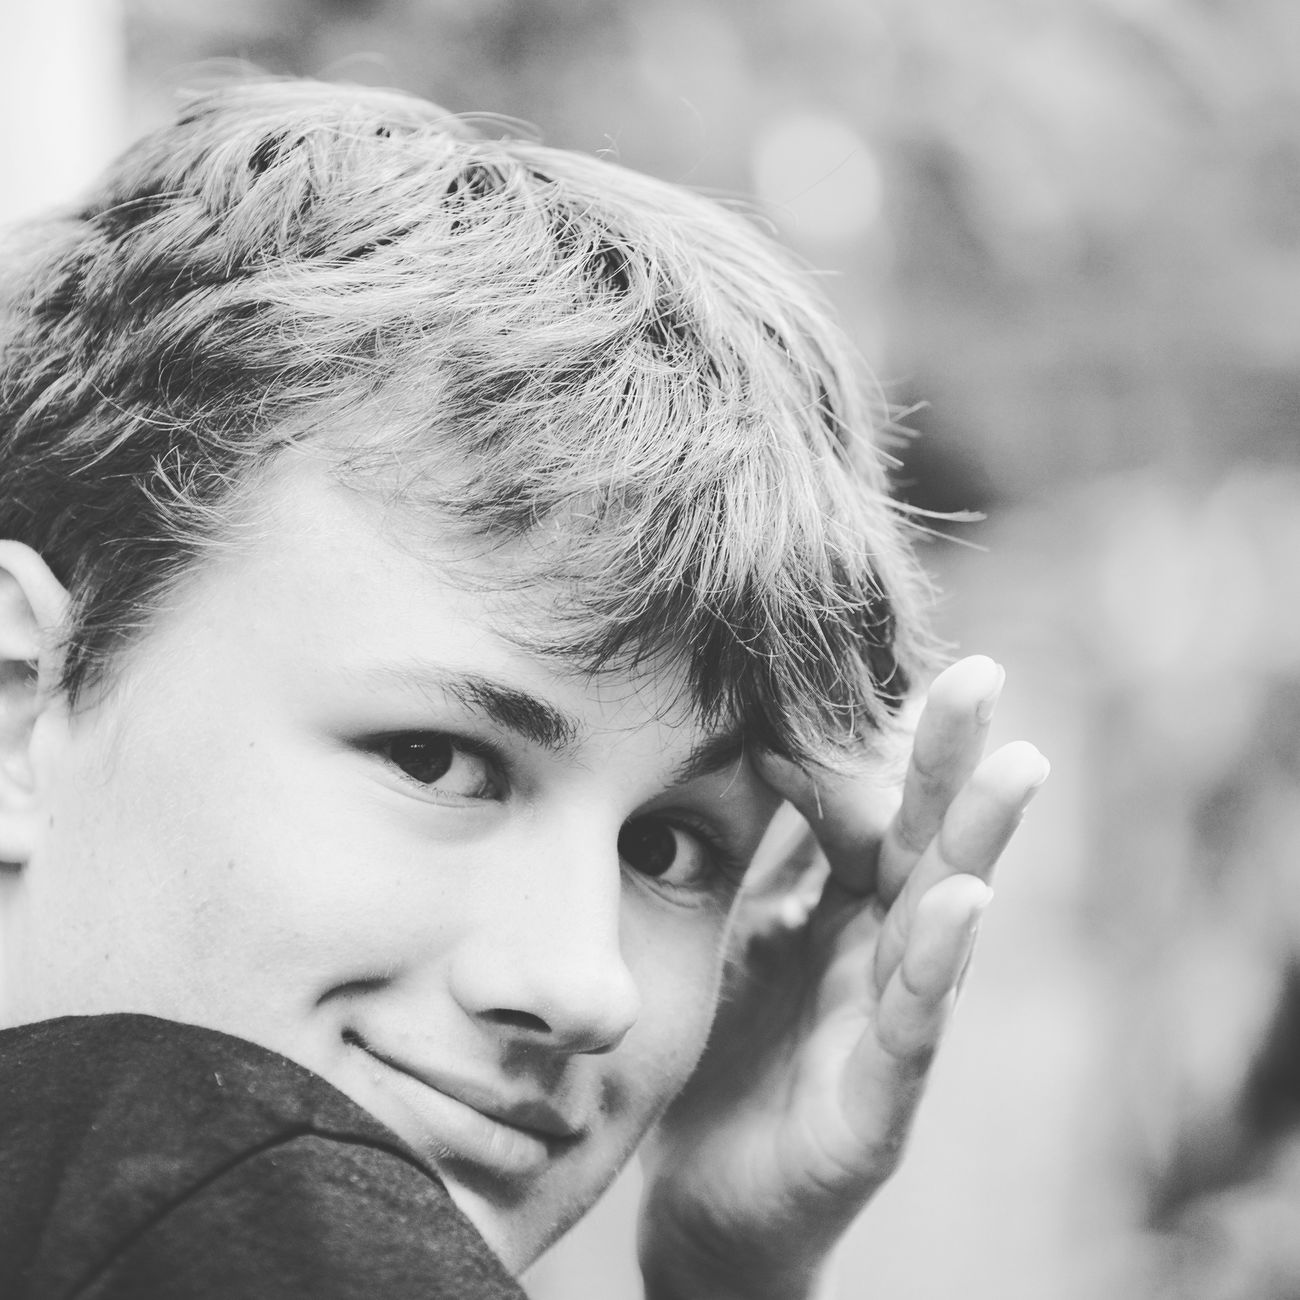 Headshot Portrait One Person People Close-up Day Dreaming Human Face Child Childhood Young Adult Outdoors Day Monocrome